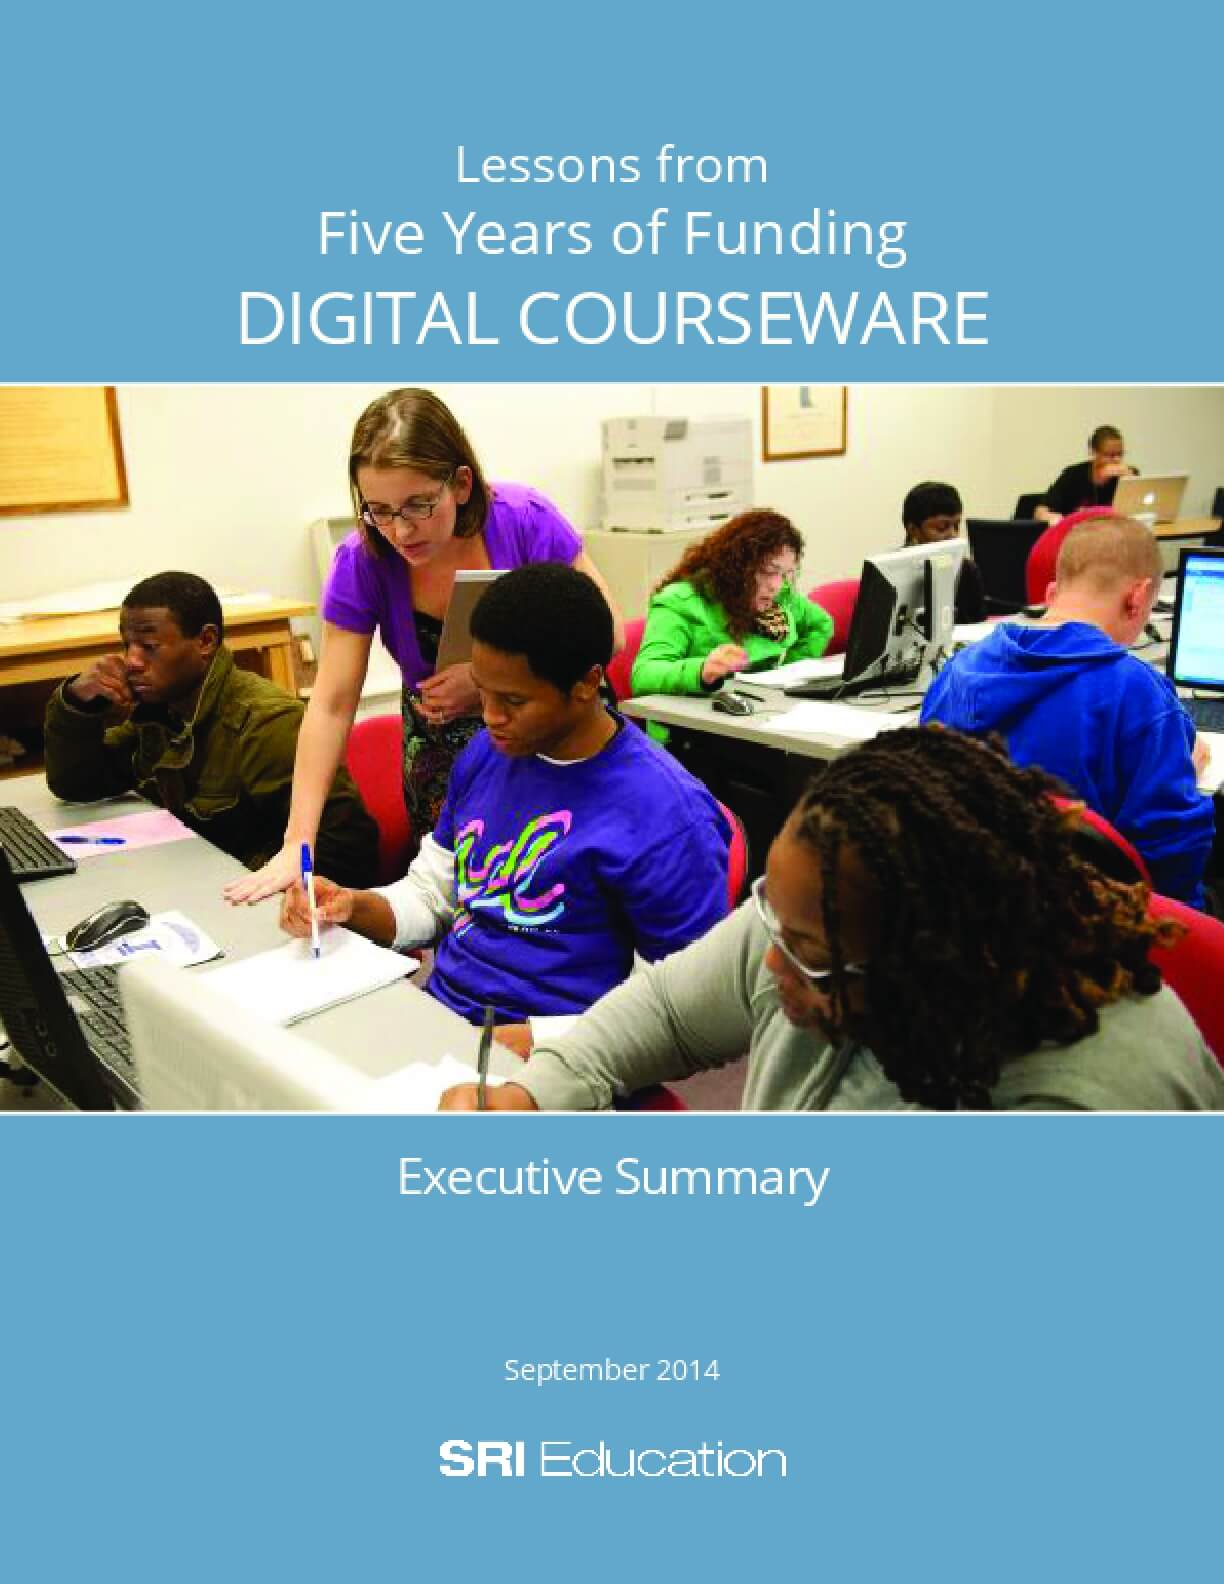 Lessons from Five Years of Funding Digital Coursework, Executive Summary